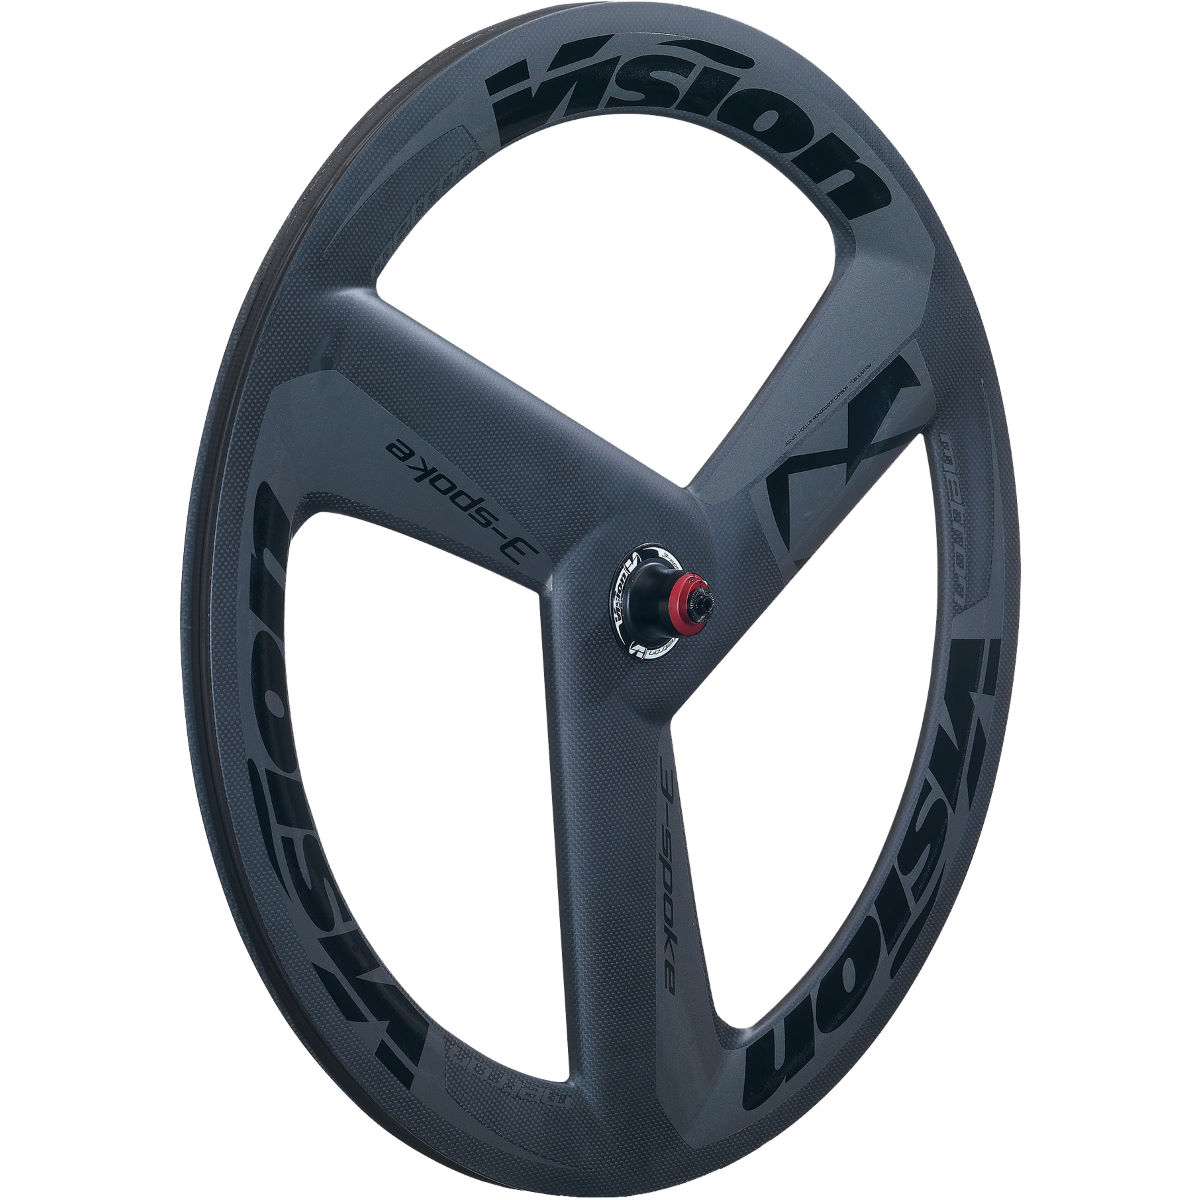 Roue avant Vision Metron Carbon Grey 700 (3 rayons, boyau) - 700c Campagnolo Gris Roues performance